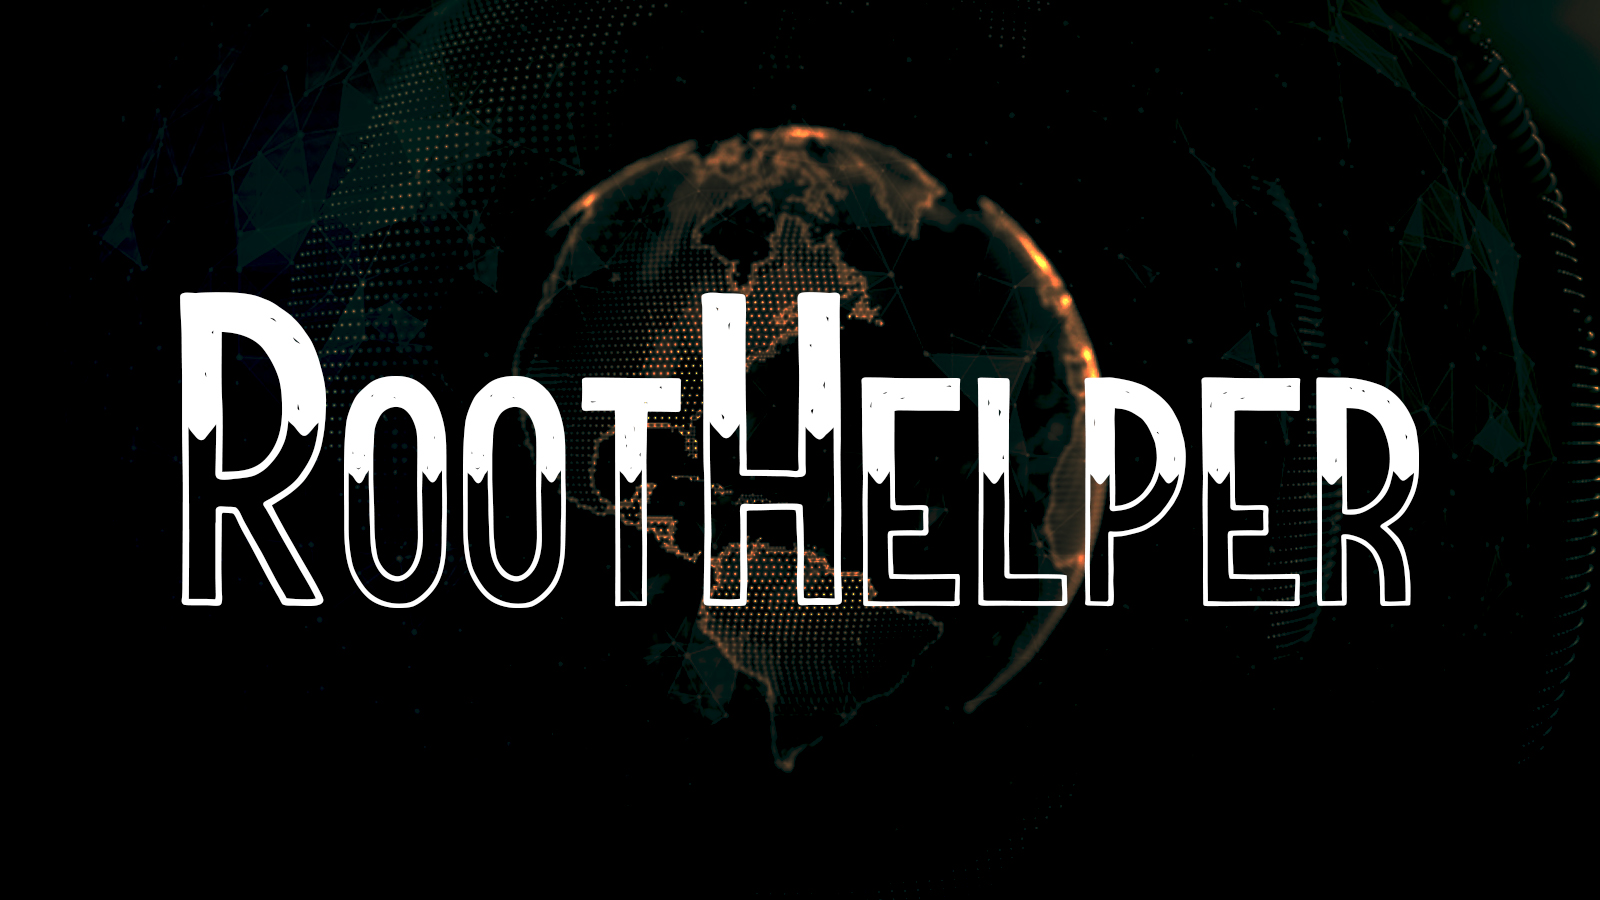 RootHelper - A Bash Script that Downloads and Unzips Scripts that will Aid with Privilege Escalation on a Linux System